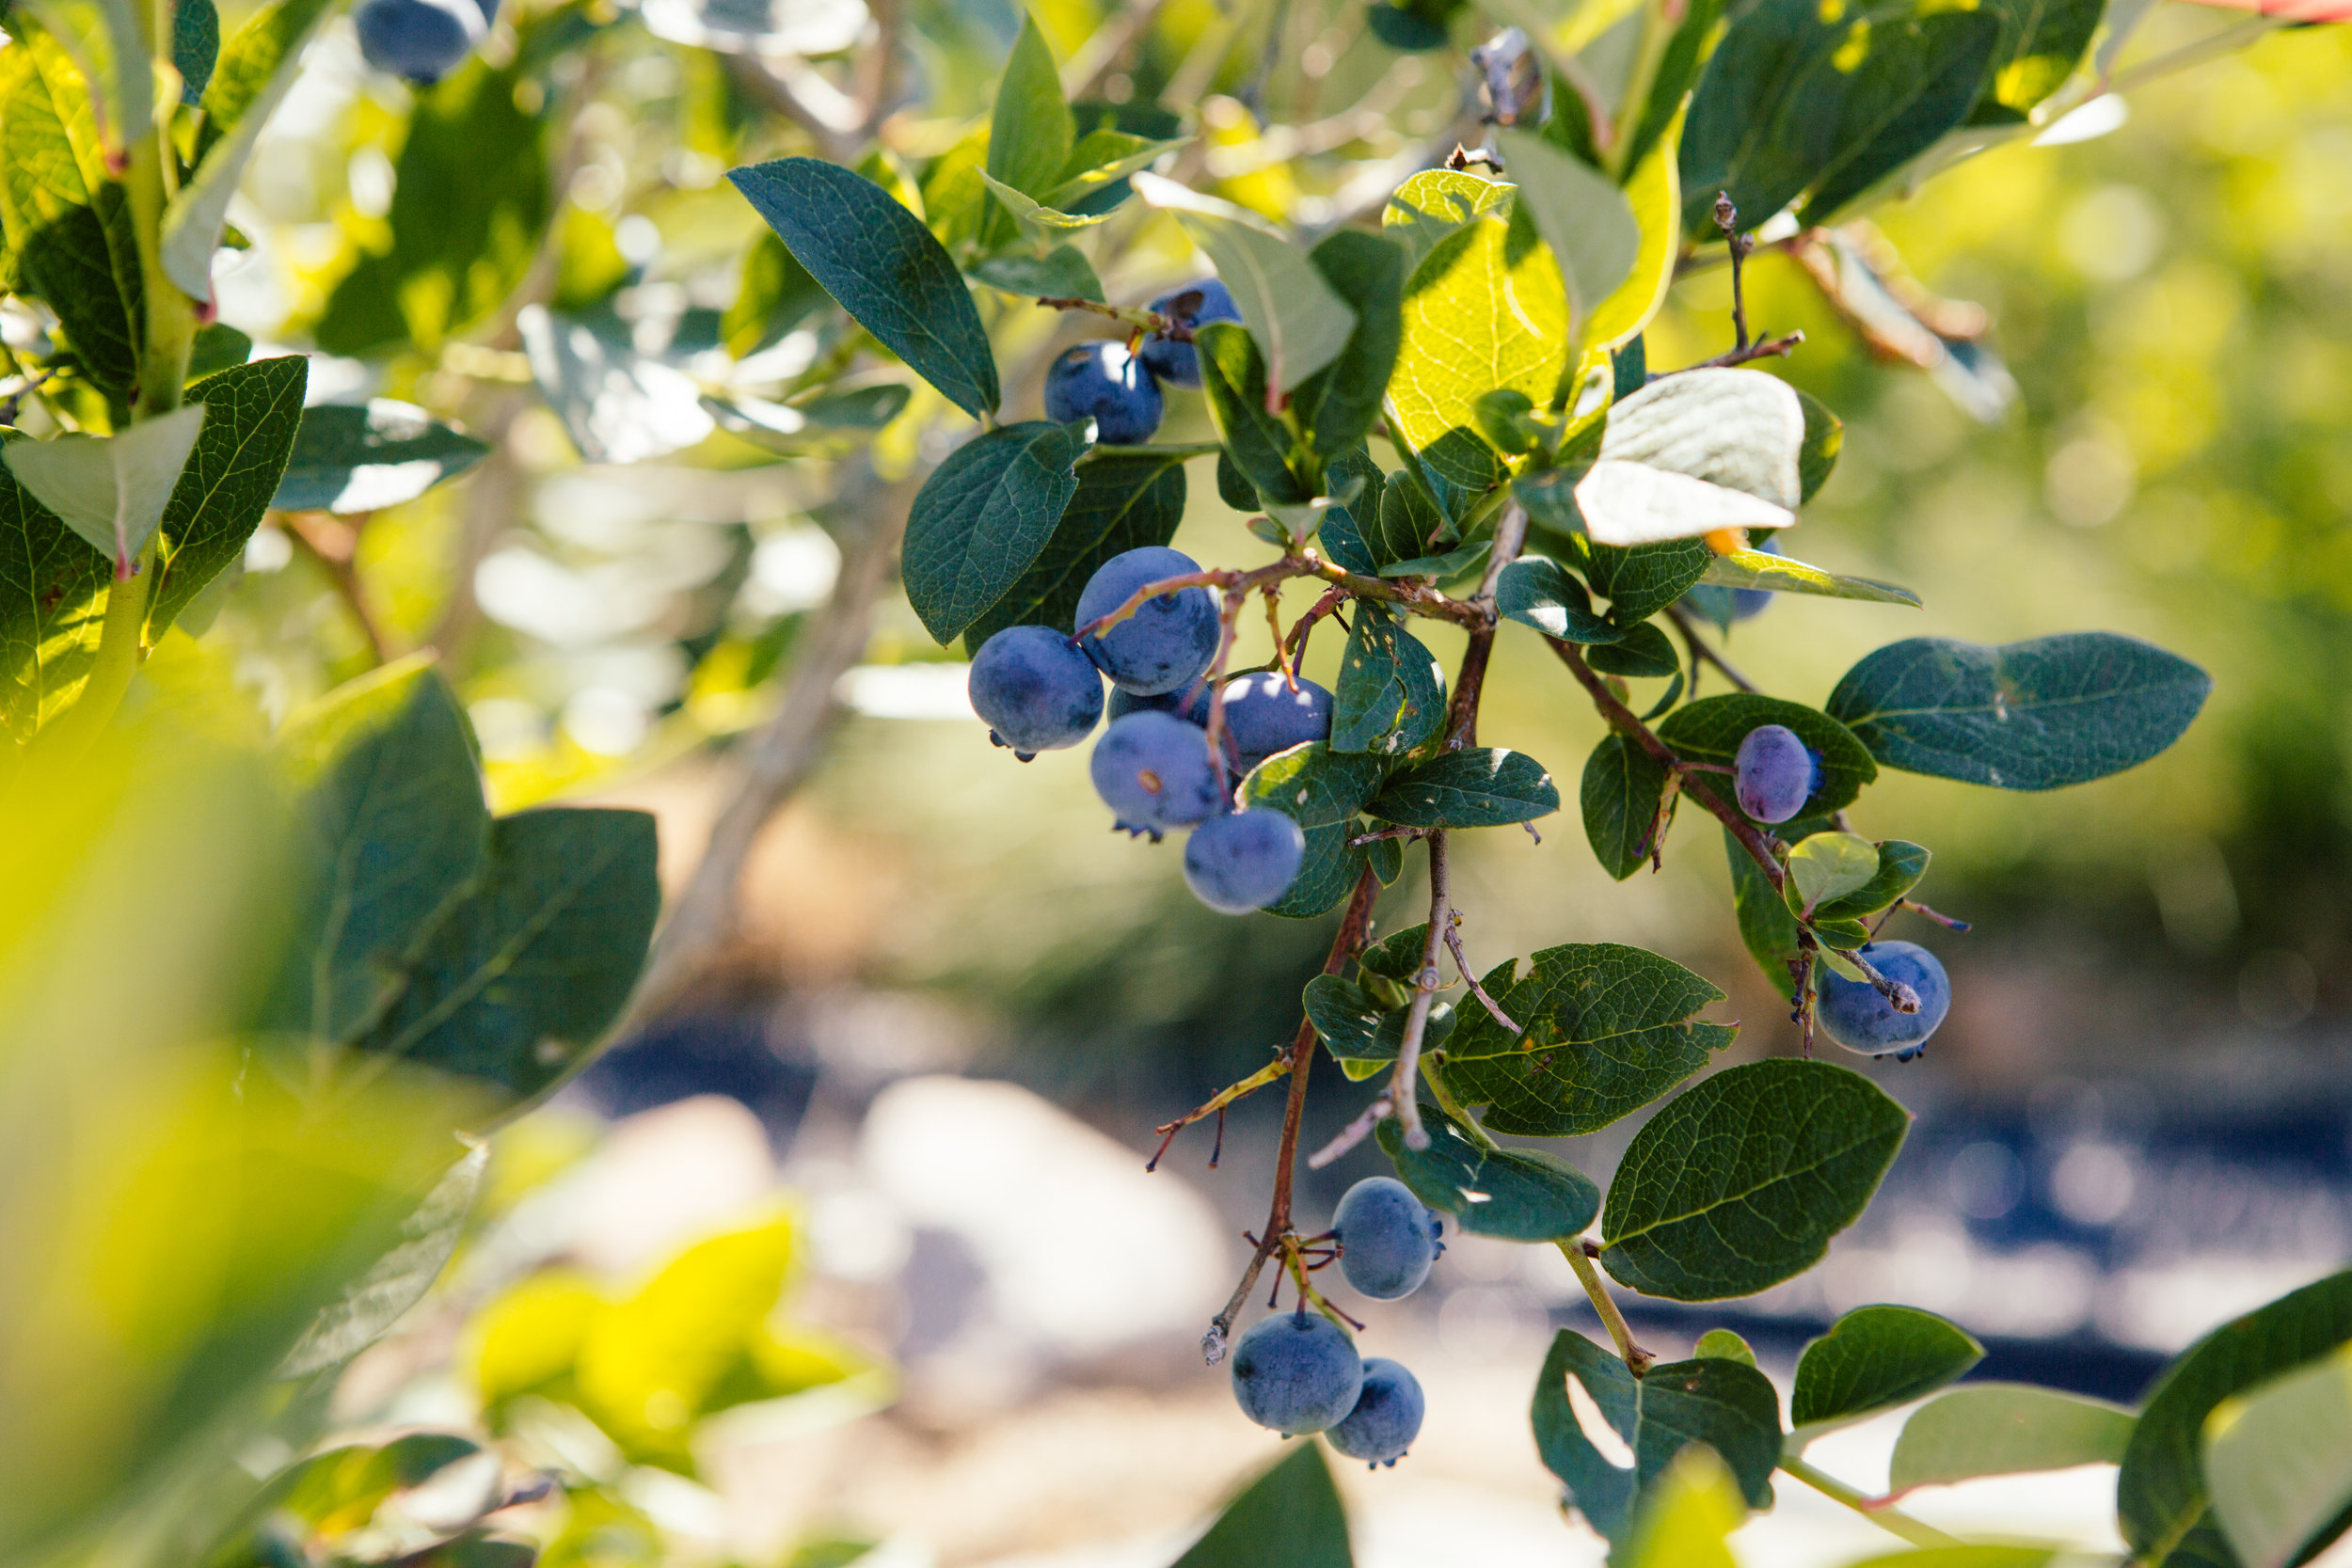 Blueberries from Adam's Berry Farm